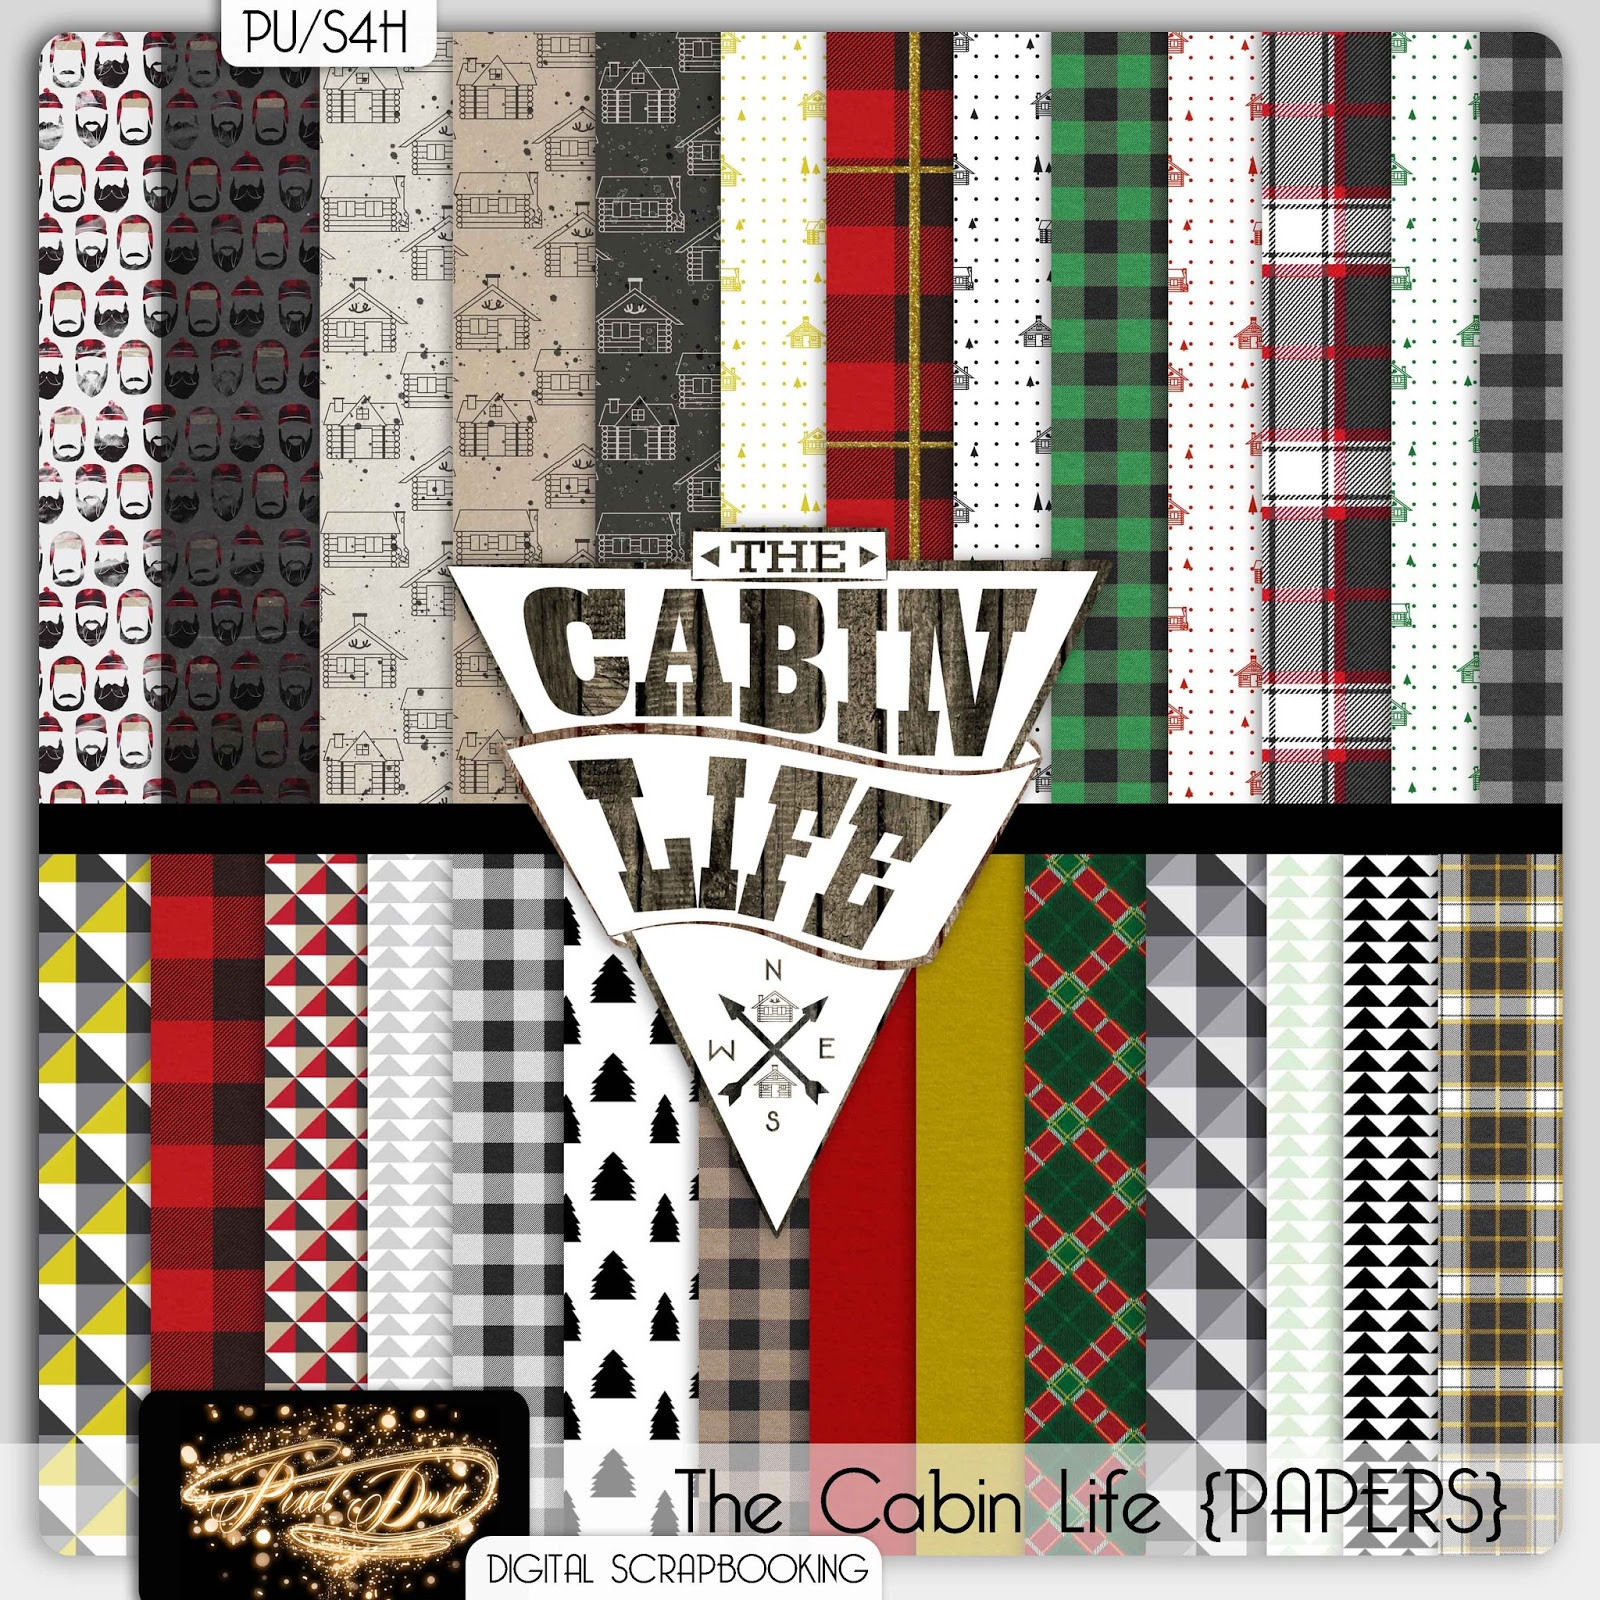 Digital scrapbooking kits free all about scrapbooking ideas - The Cabin Life Free Mini Digital Scrapbooking Kit